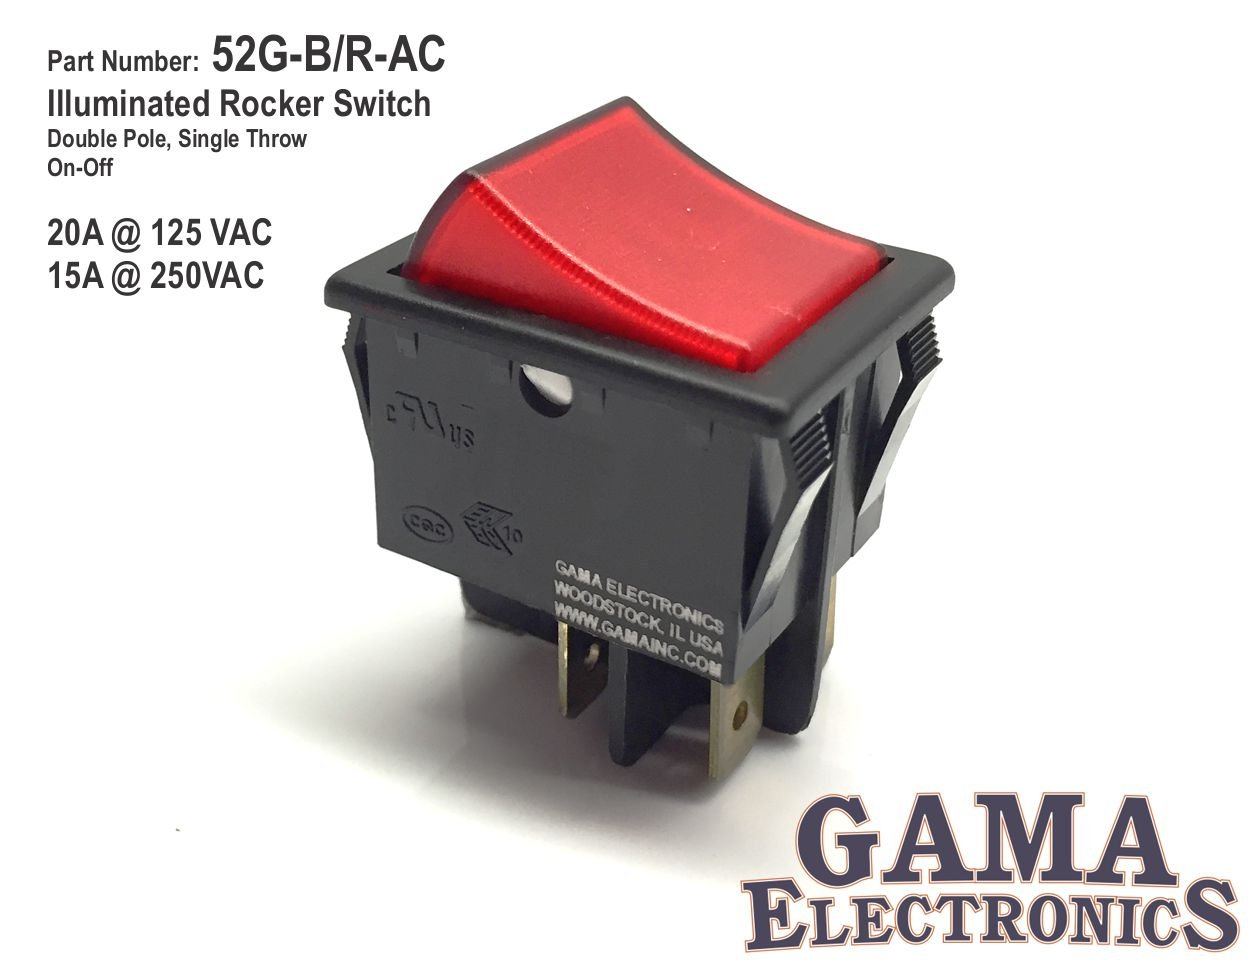 Amazon.com: 20 Amp Double Pole On Off Illuminated Rocker Switch 120/240VAC  DPST: Automotive